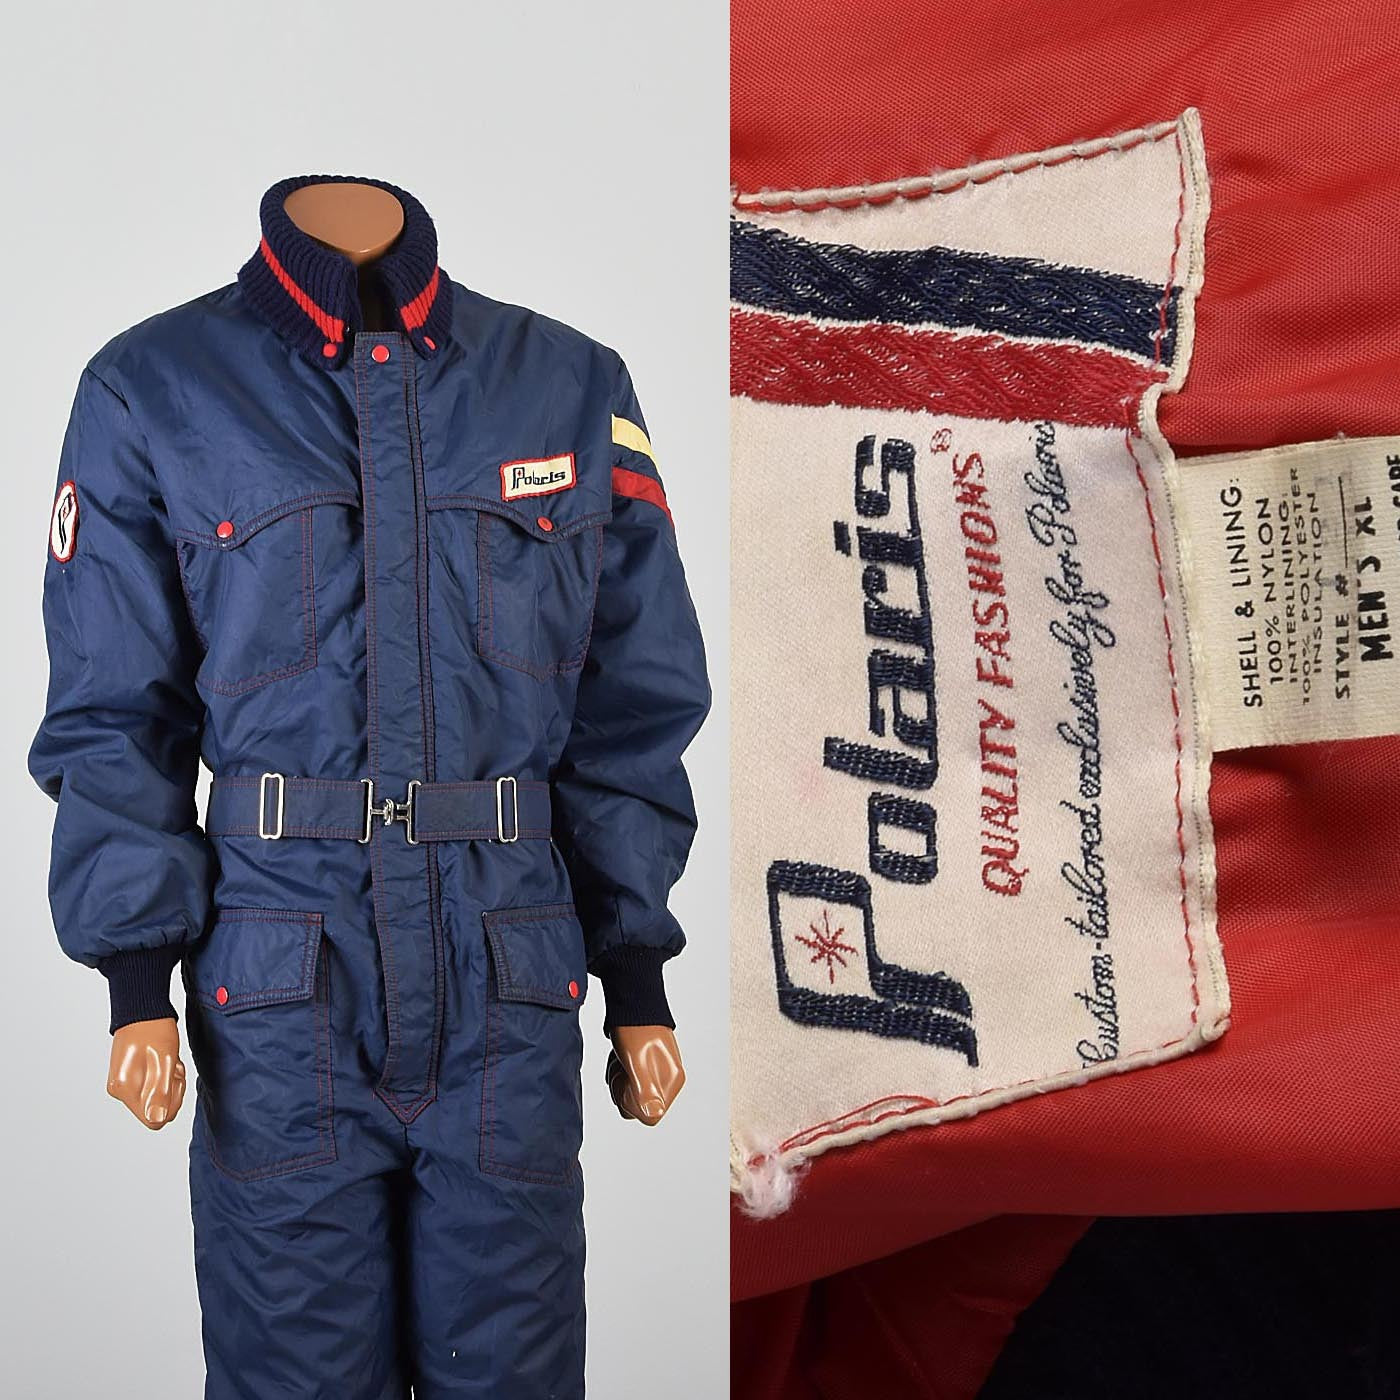 1970s Men's Polaris Snowmobile Snow Suit